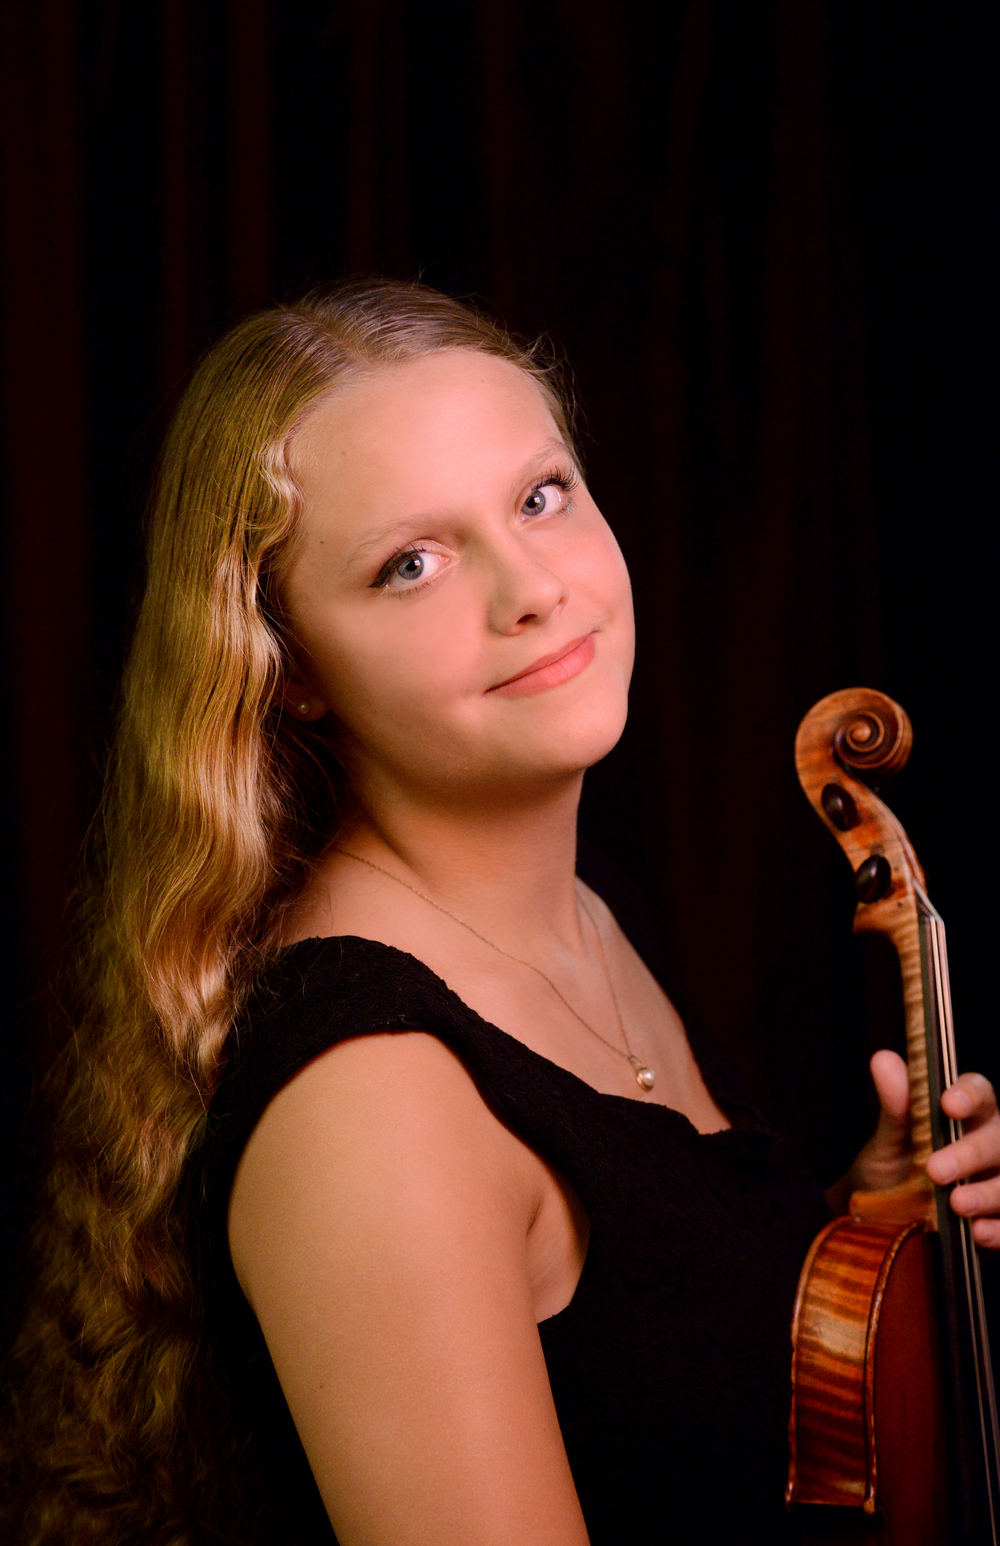 Violinist Lily Mell